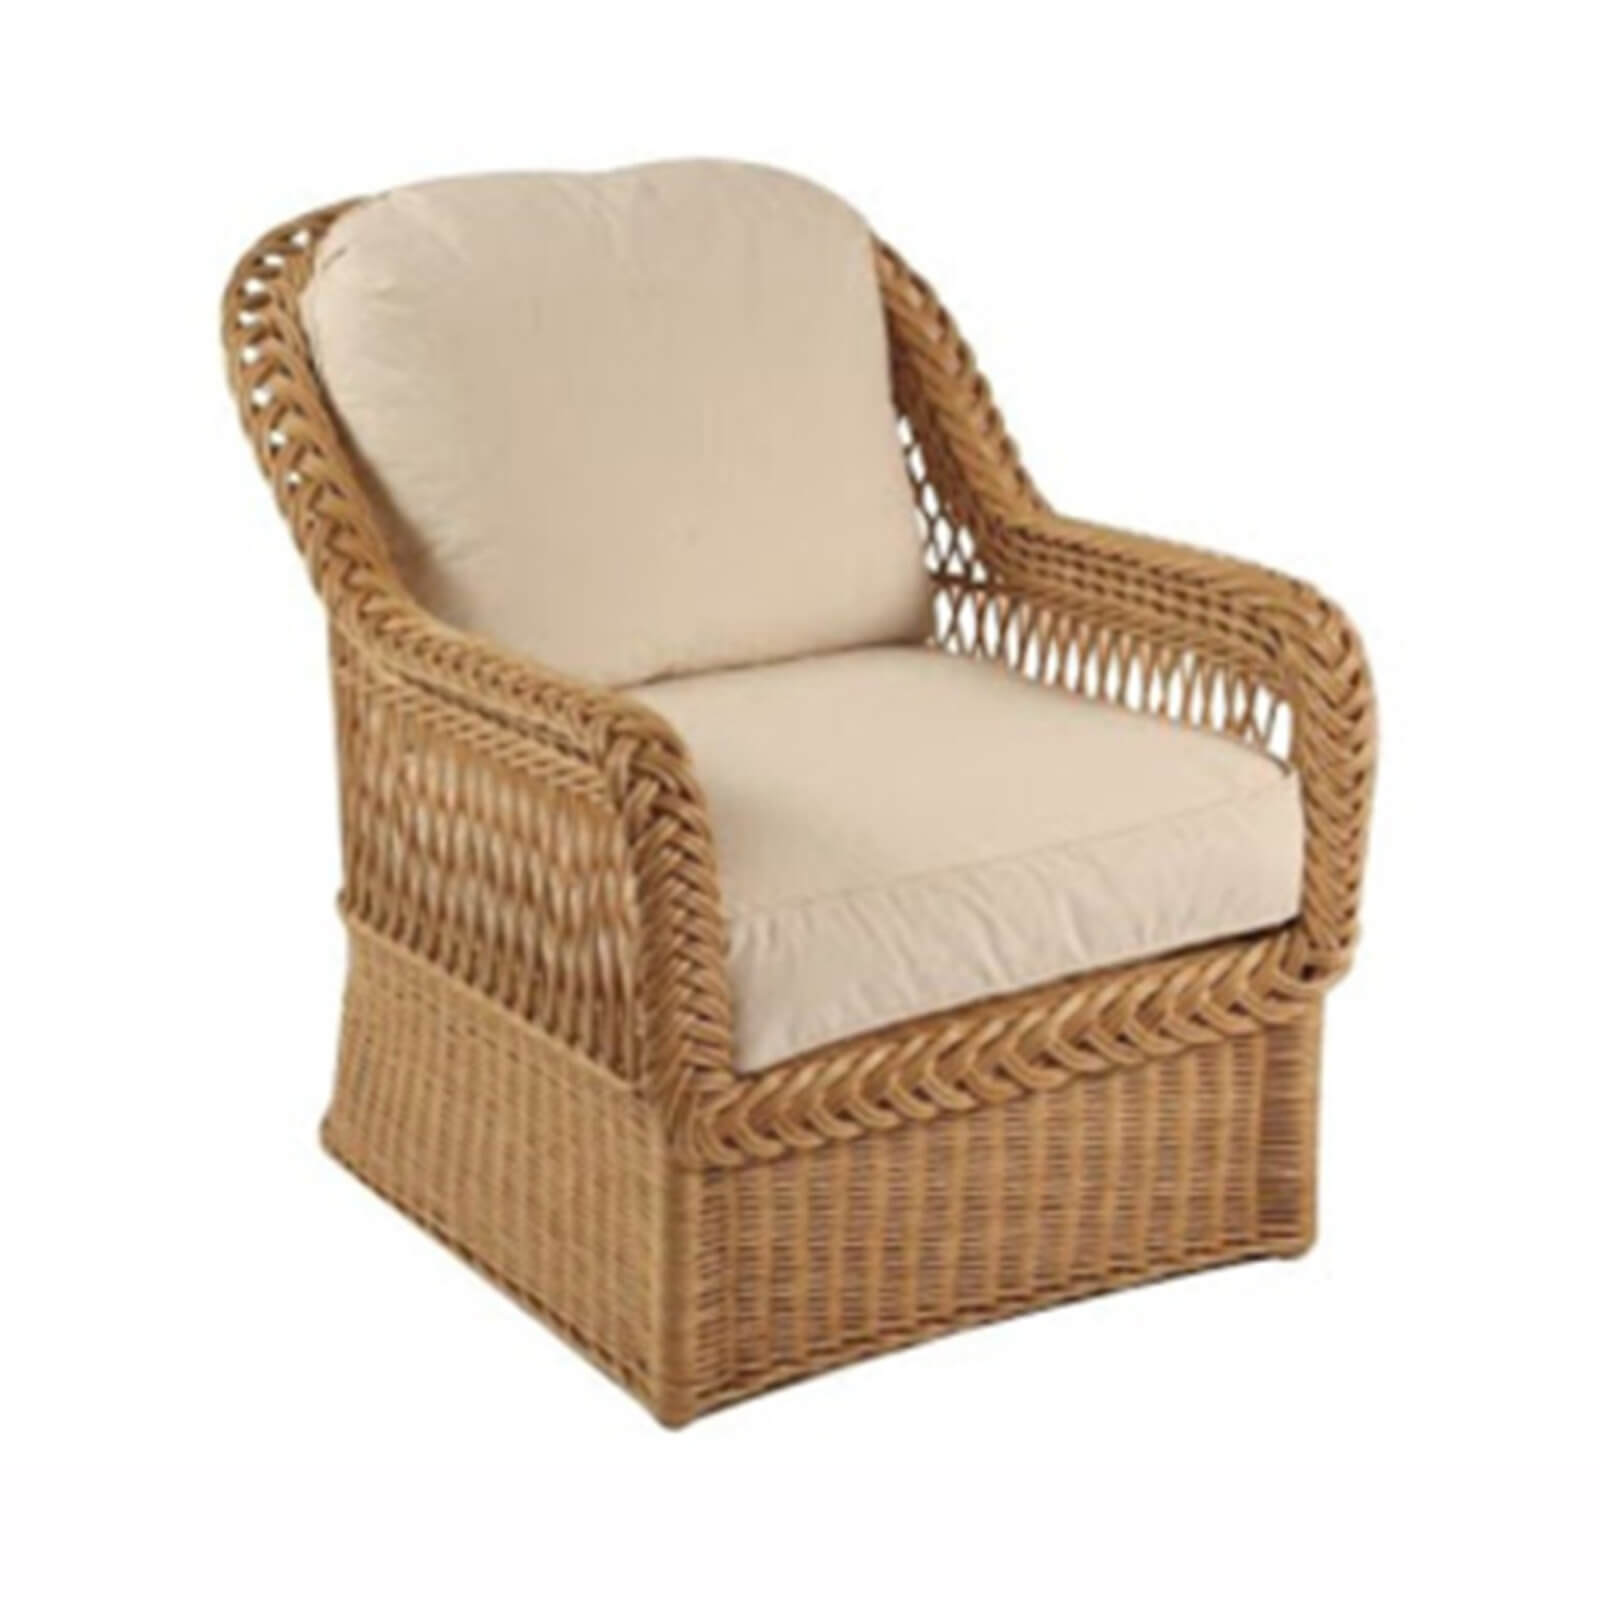 LAKE HOUSE WICKER CLUB CHAIR